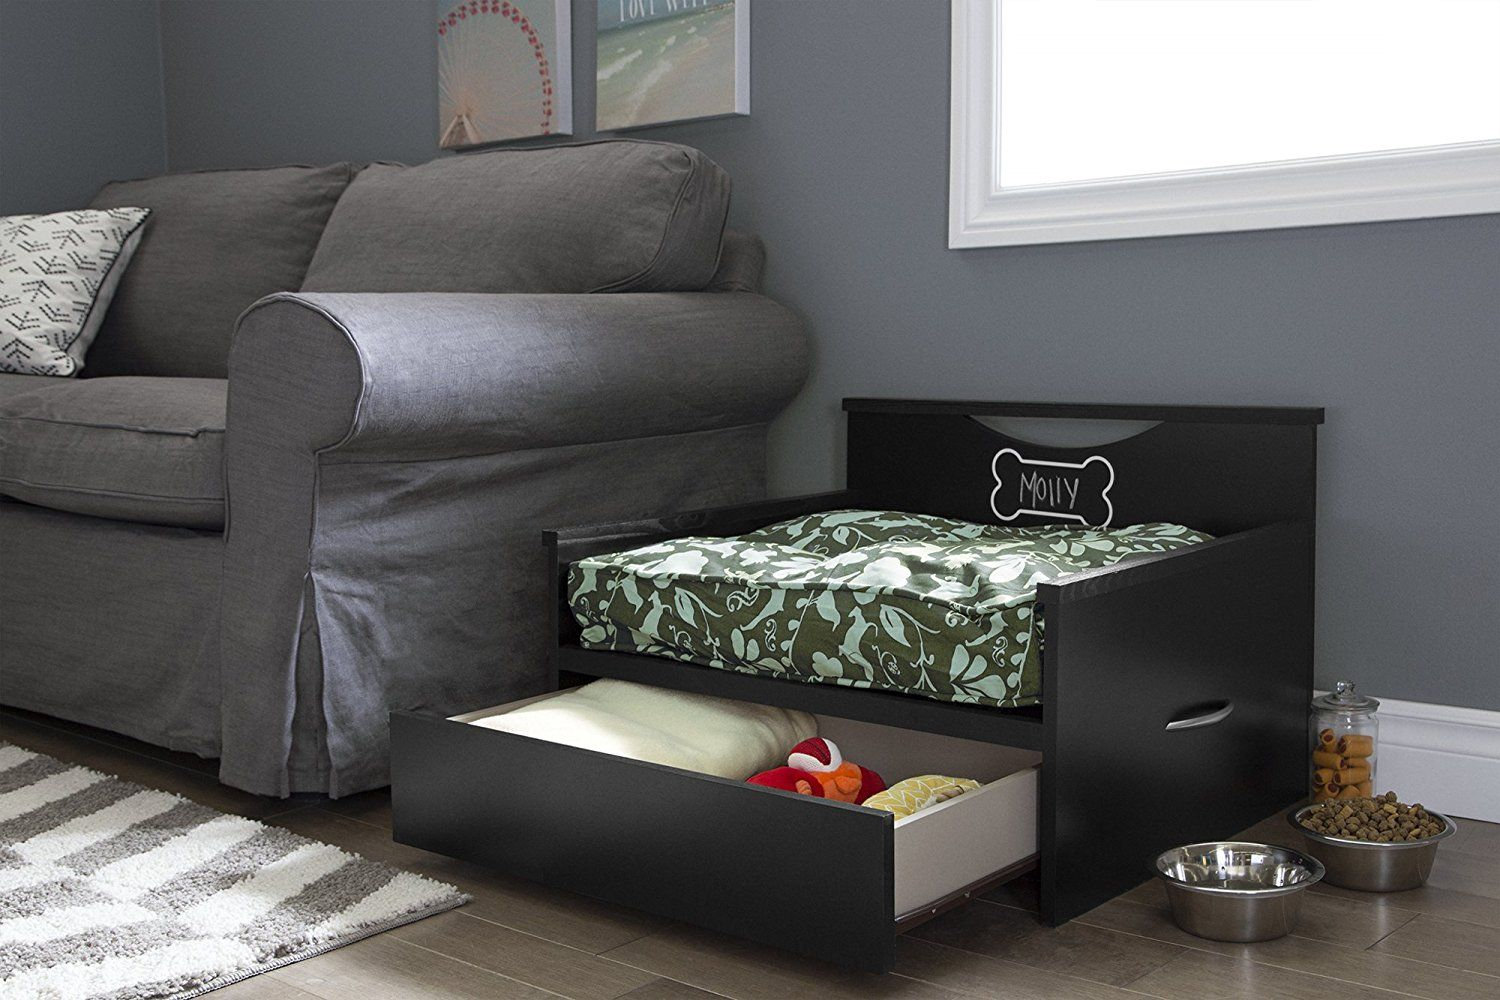 Amazon Com South Shore Step One Dog Bed With Storage And Cushion Cover Pure Black Pet Supplies With Images Dog Bed Coffee Table Pet Bed Bed Storage